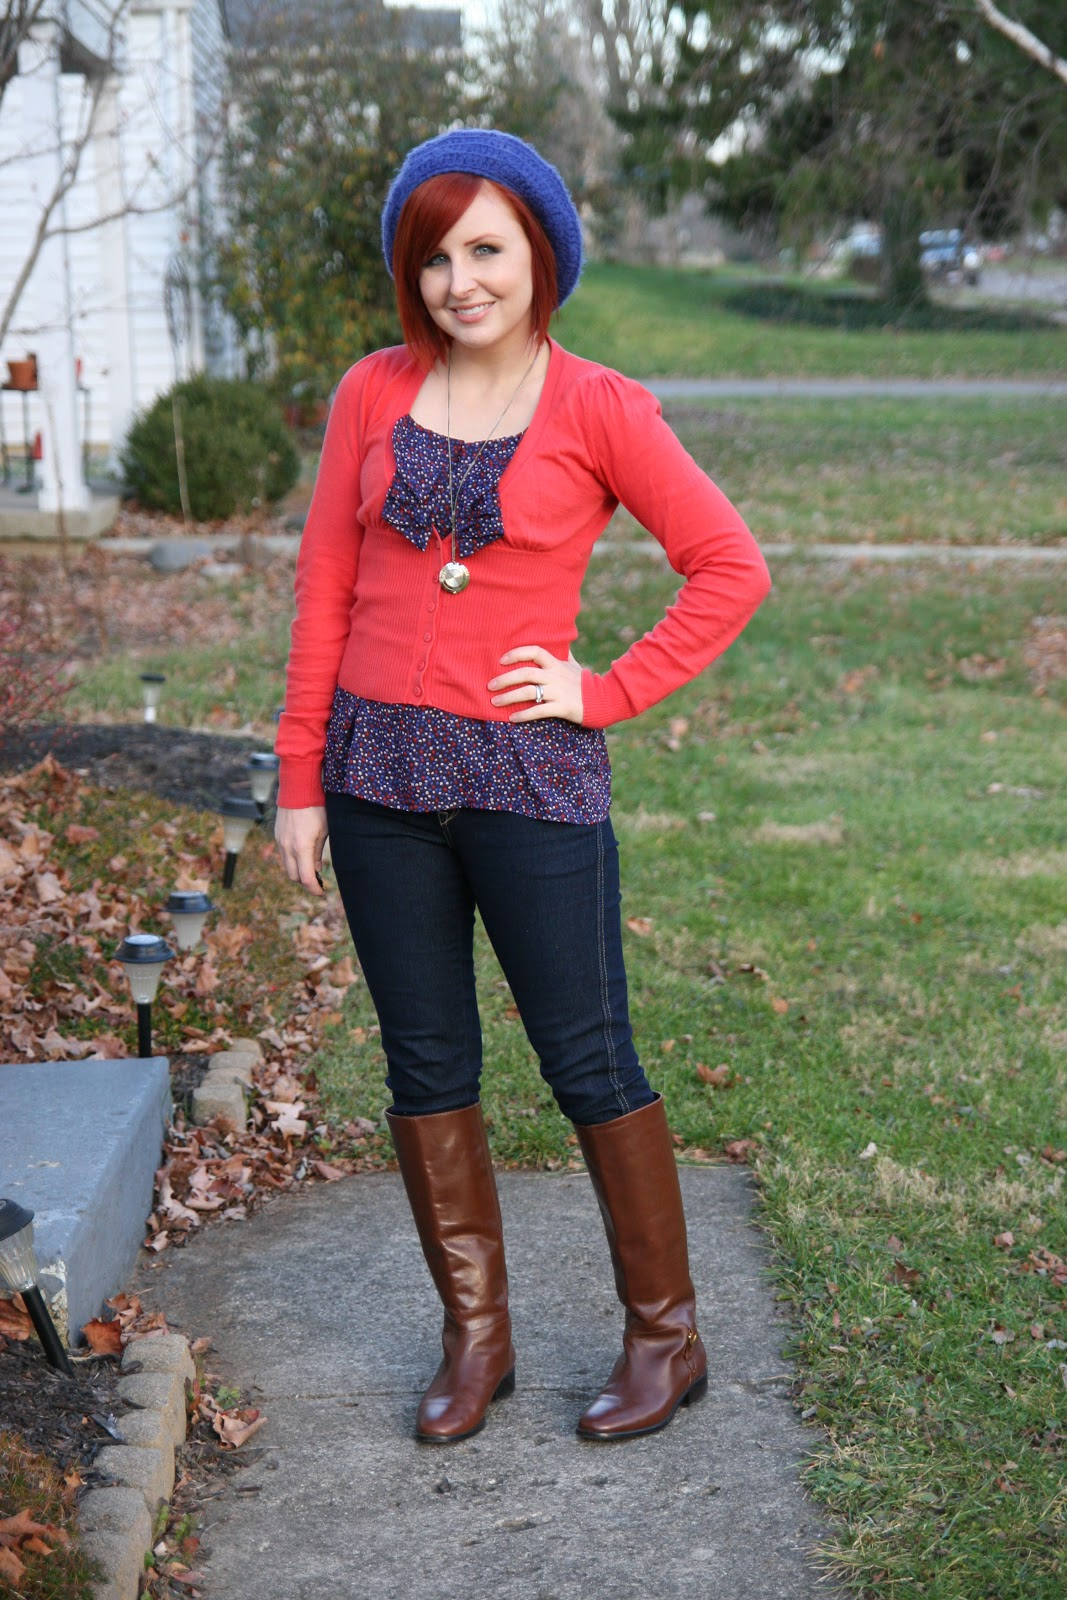 Thrift And Shout: Cute Outfit Of The Day: Bowling Chic